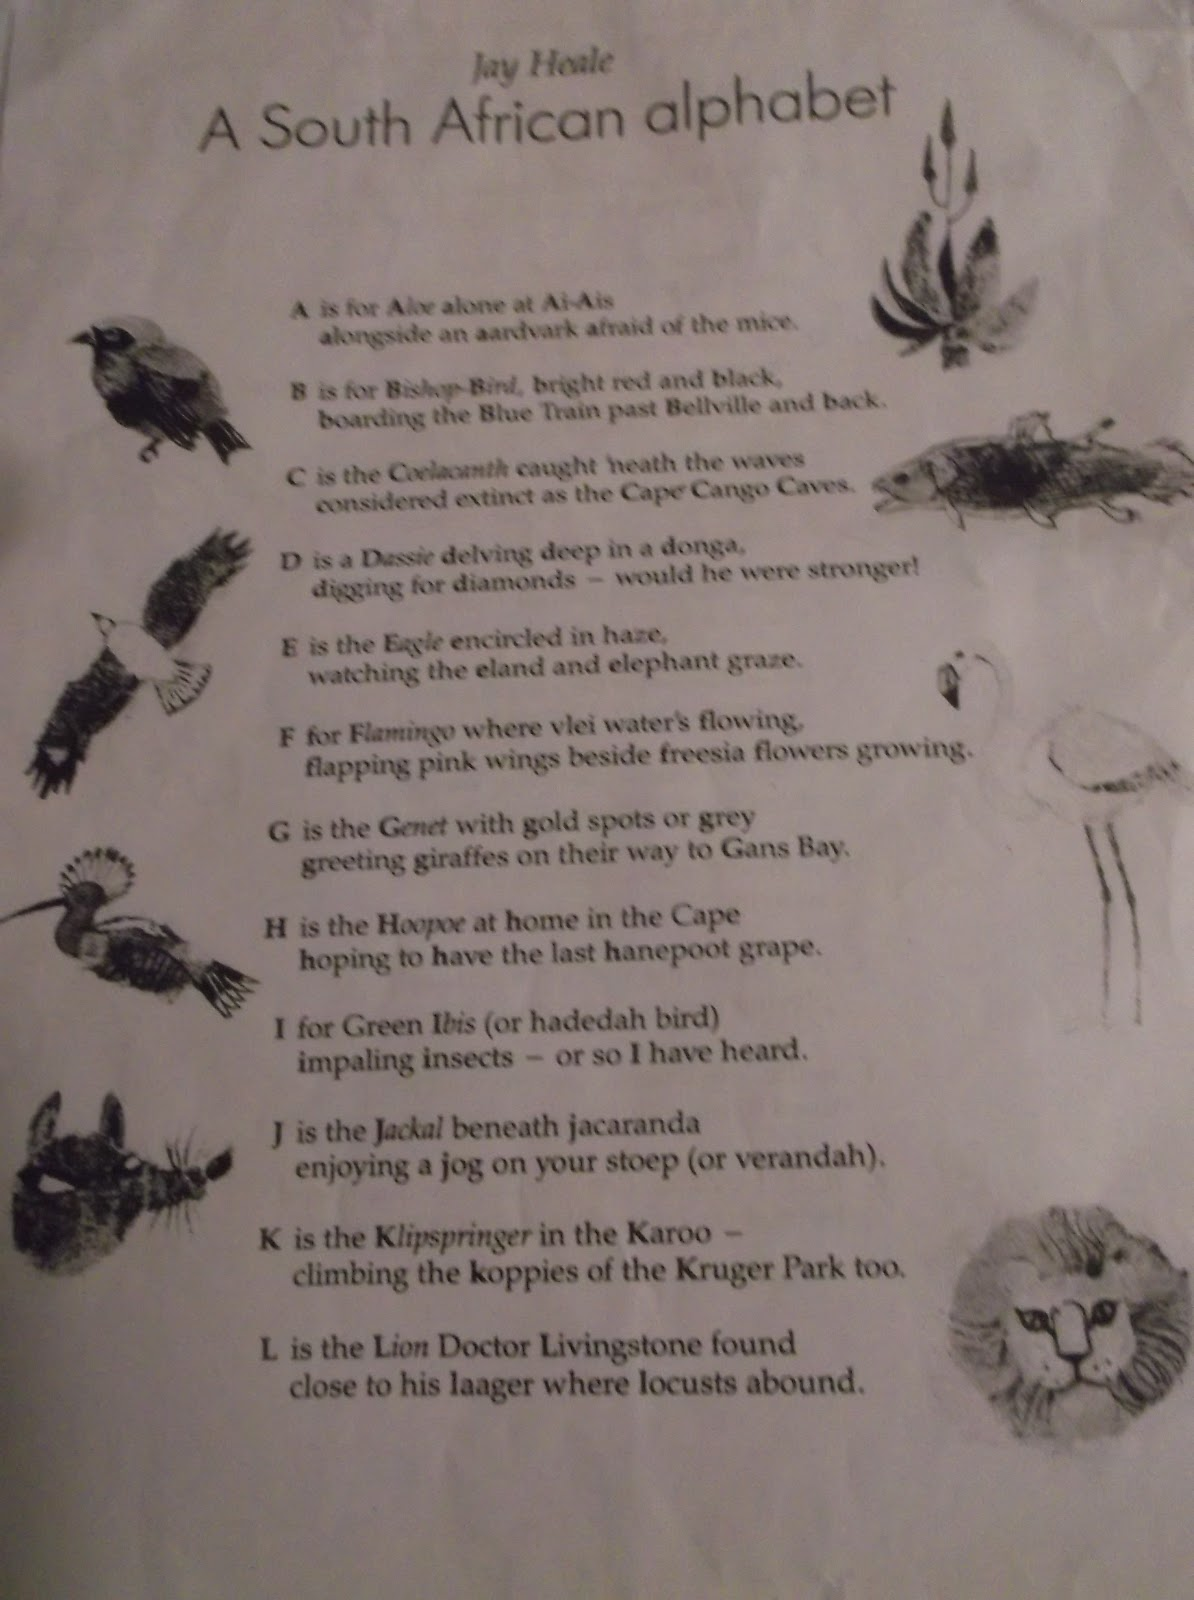 creative alphabet poem Is there a mystic in you, a seeker longing to express potent insights using  rilke's the duino elegies as a focal point, as well as poems by elizabeth bishop, .